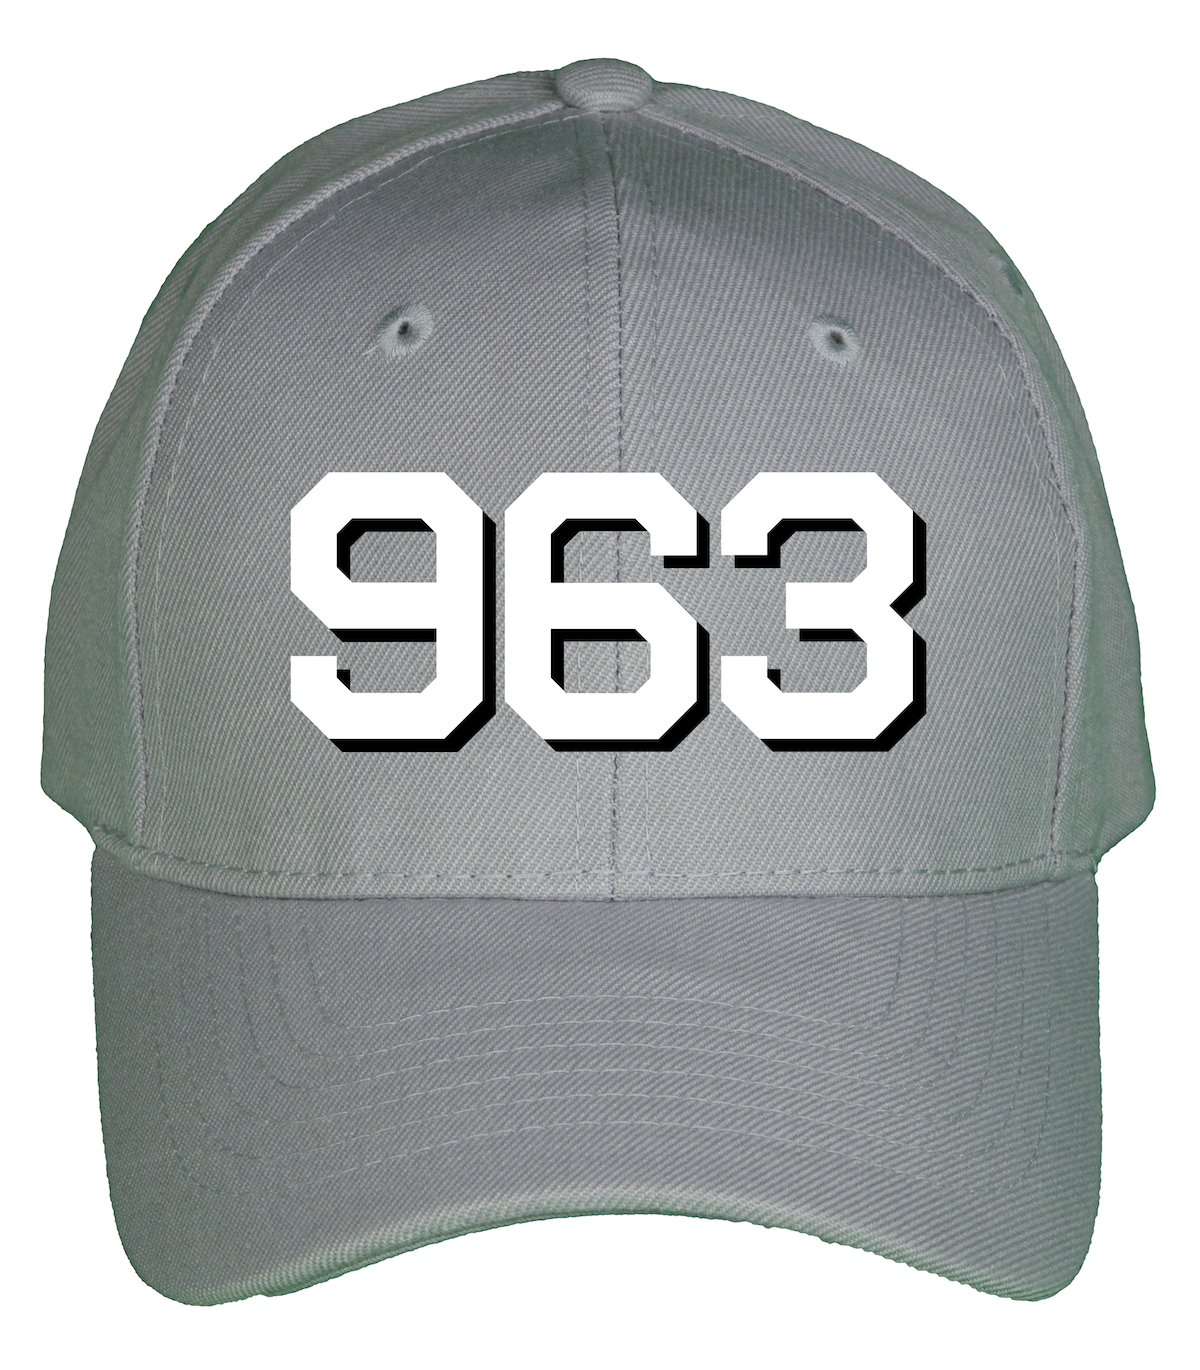 Mockup of the high quality 6-panel wool blend Hull number cap for the USS